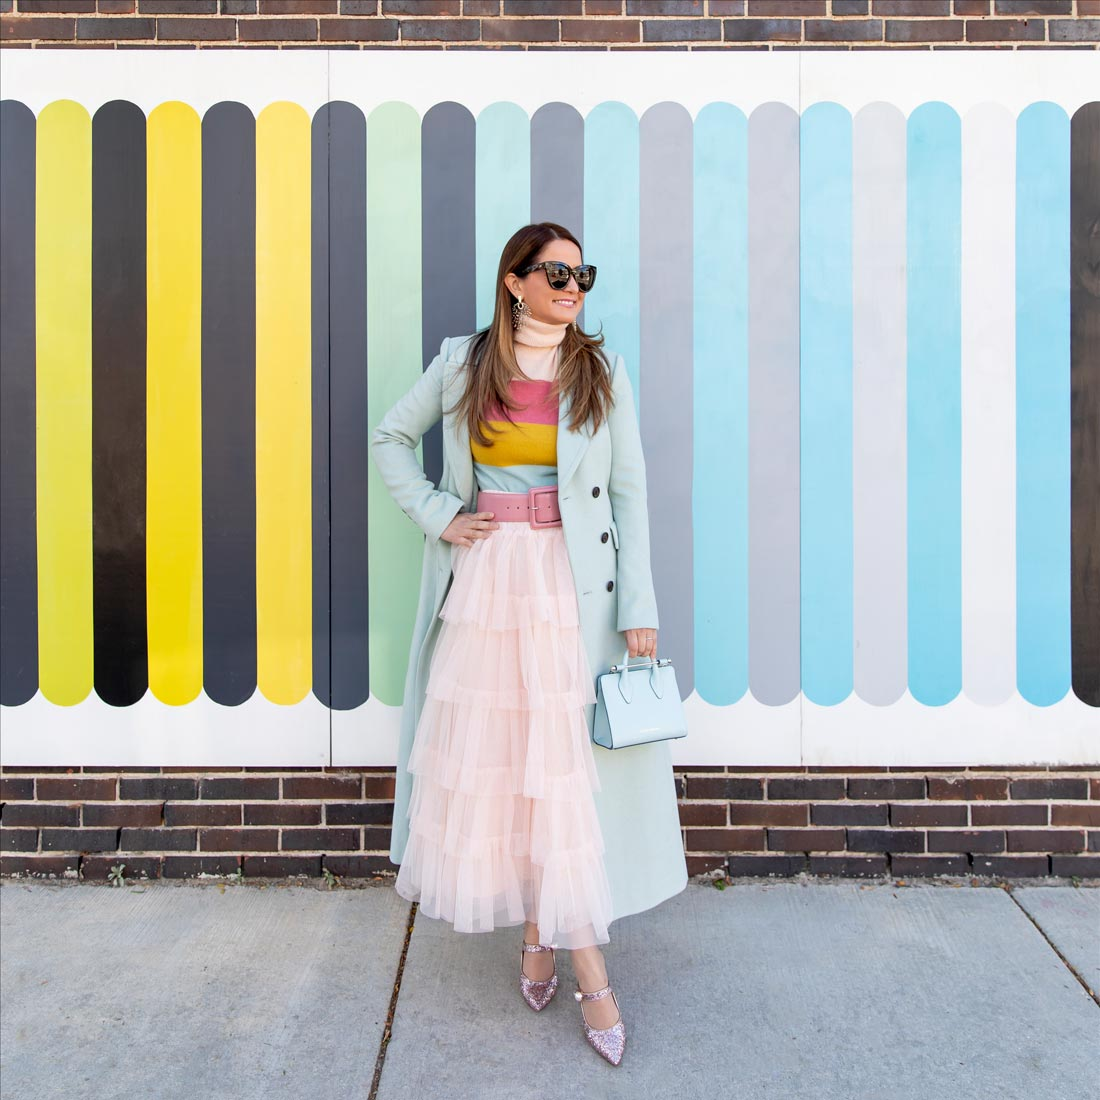 Ombre Stripe Mural Wicker Park Chicago